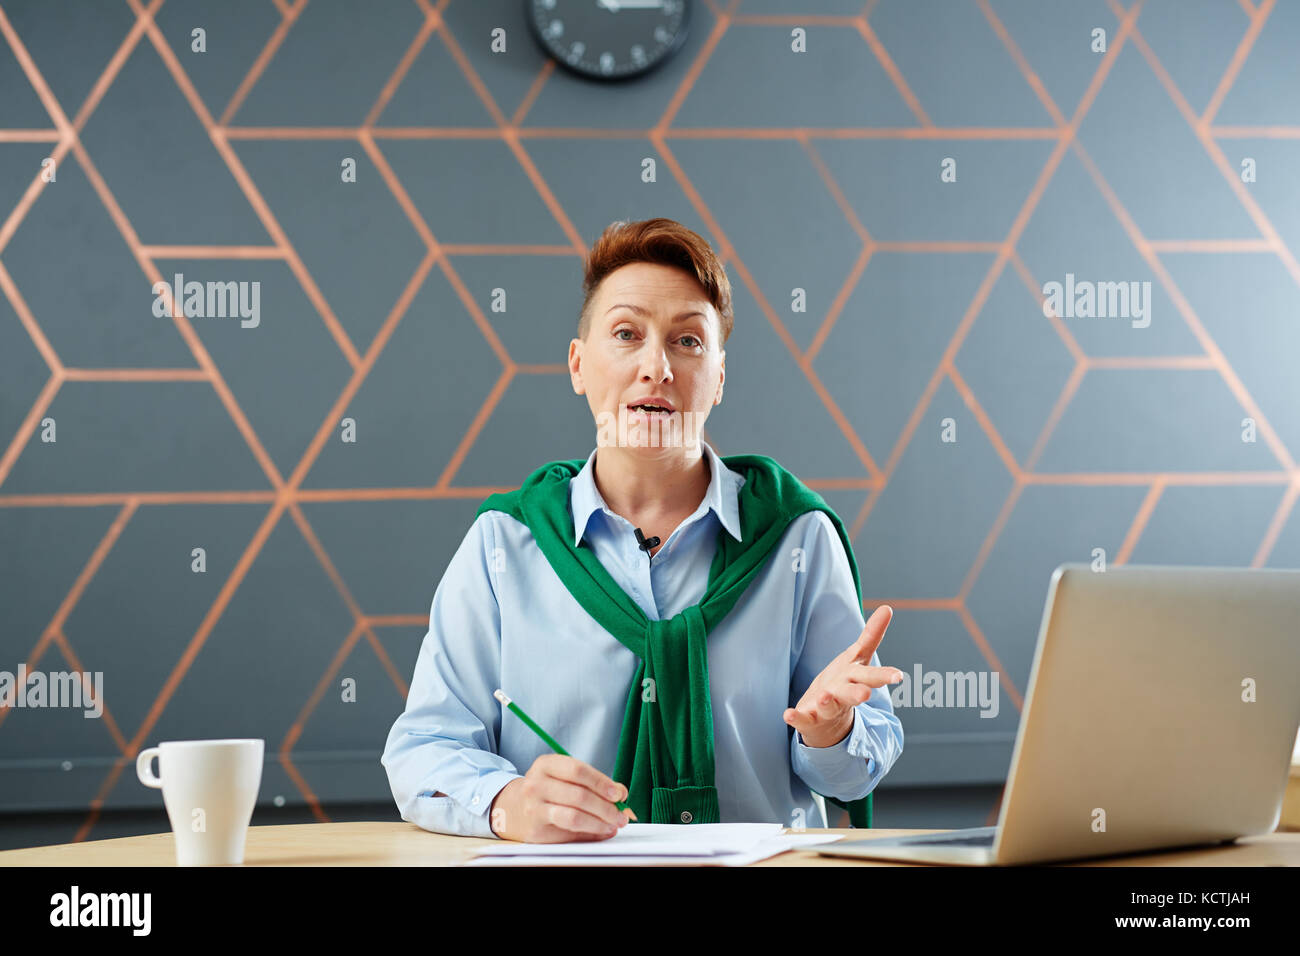 News reader - Stock Image